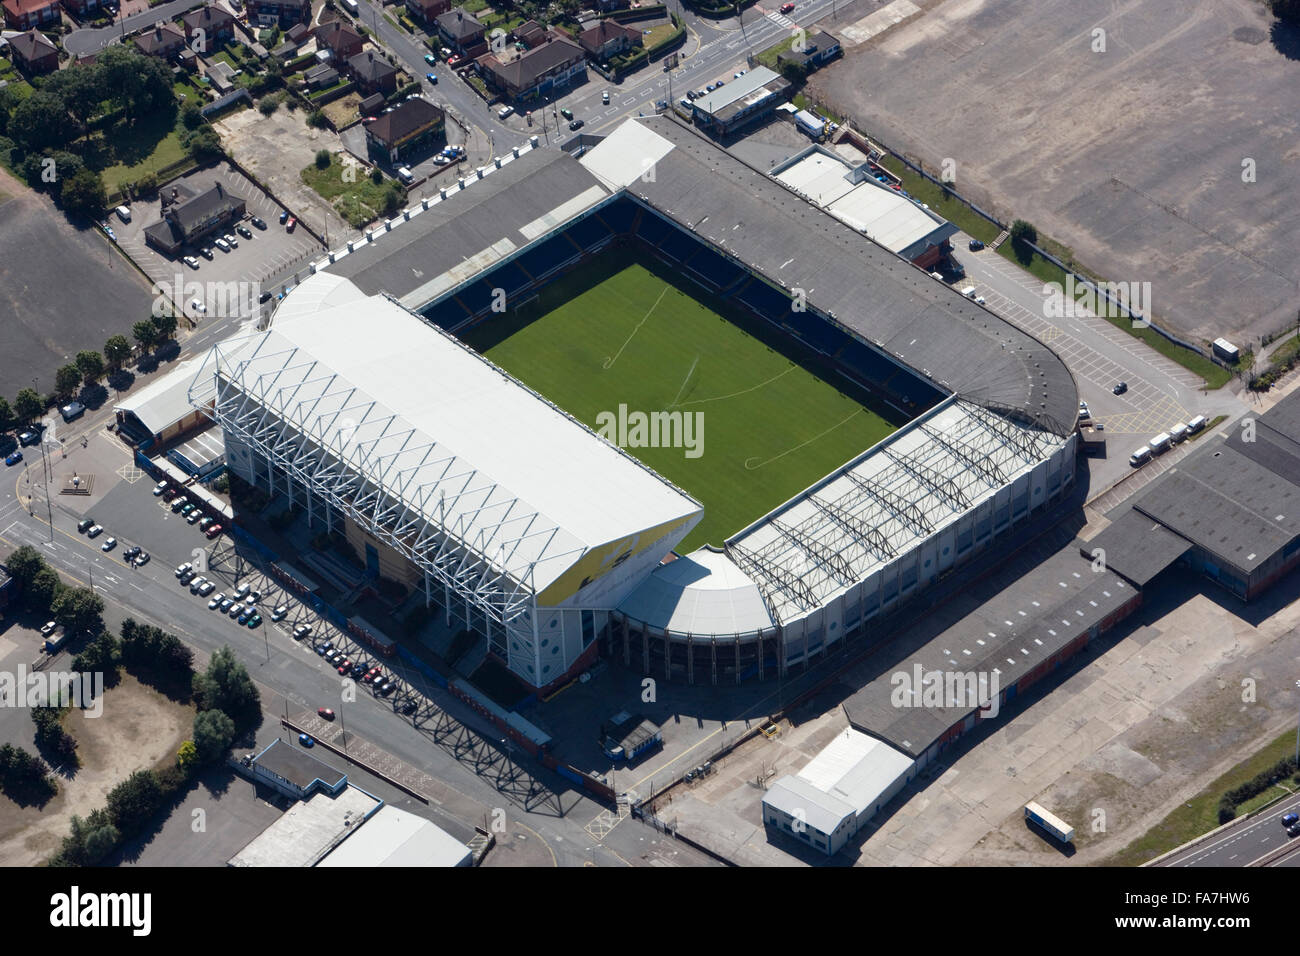 Elland Road Stadium Leeds Aerial View Home Of Leeds United Stock Photo Alamy